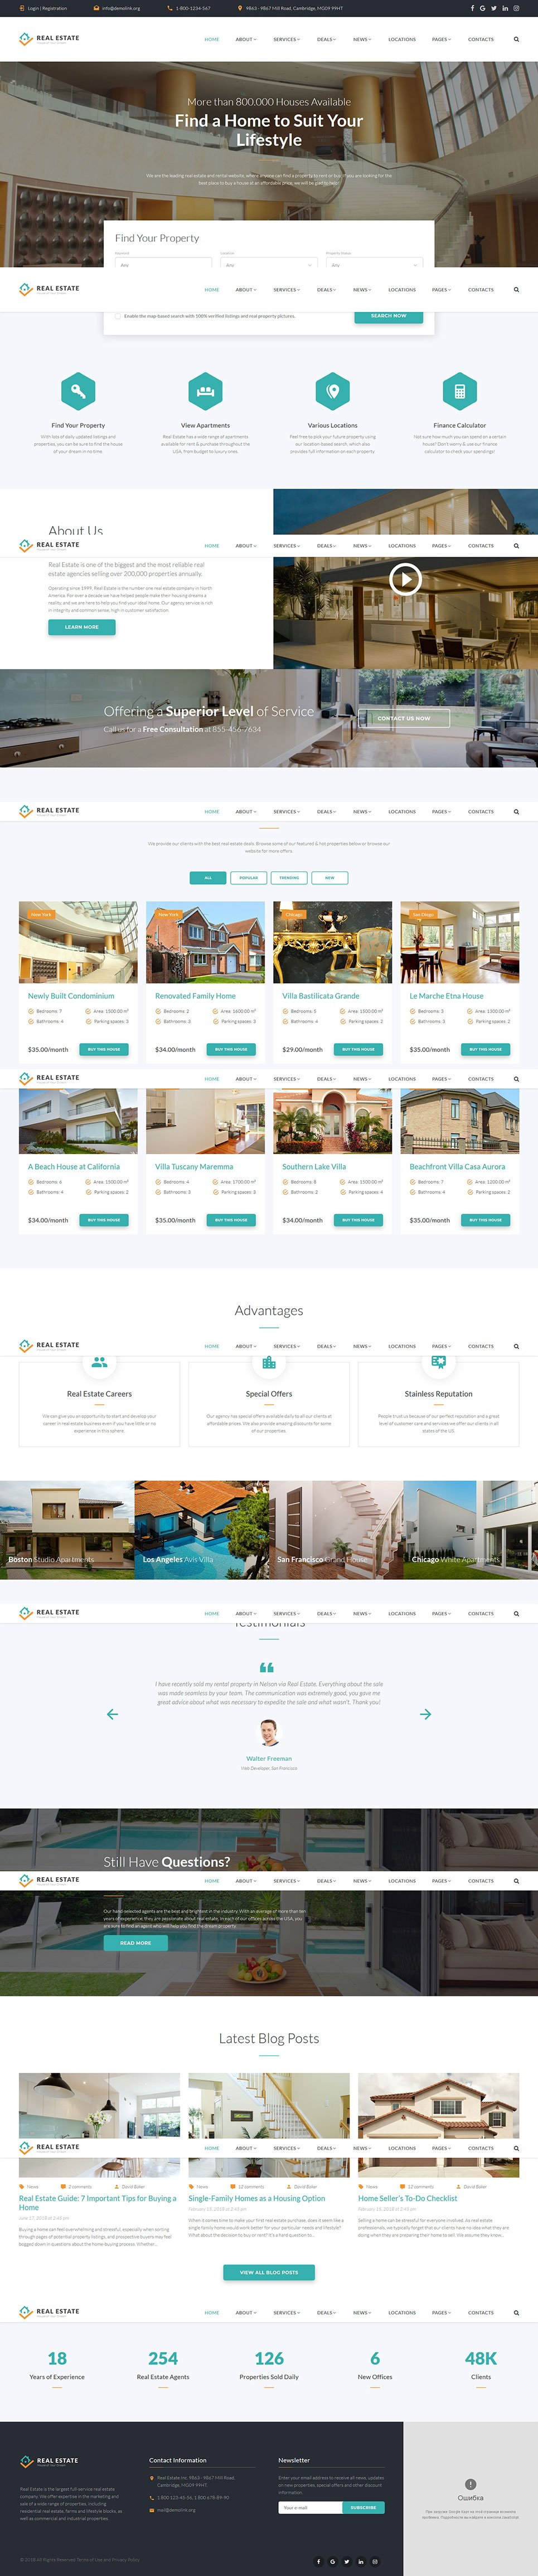 Xouas - Real Estate Agency Responsive template illustration image